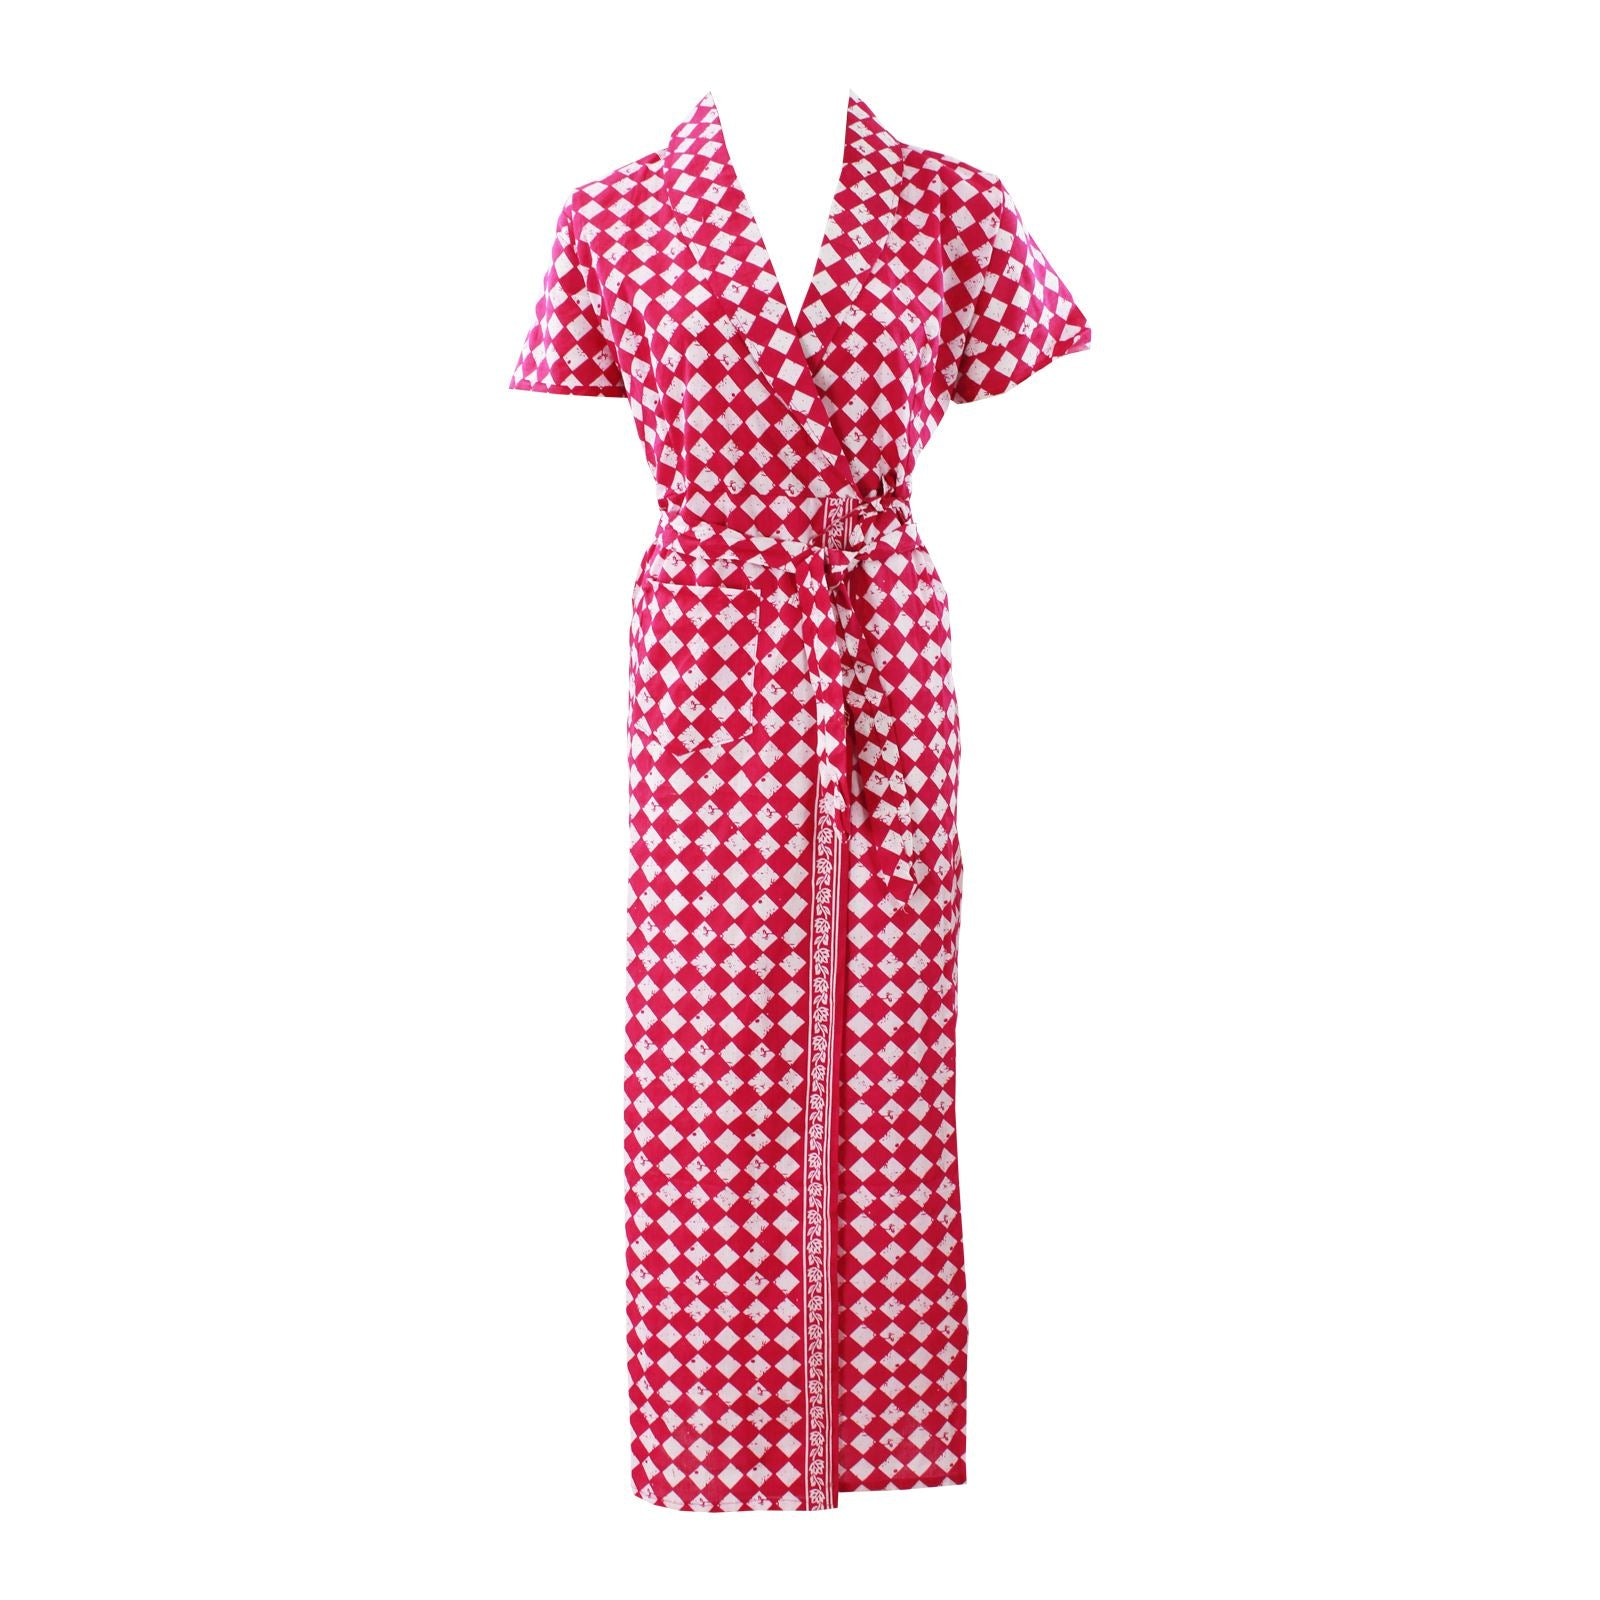 Color: Pink Sqaure 100% Cotton Bathrobe Wrap Gown Size: L (8-14)